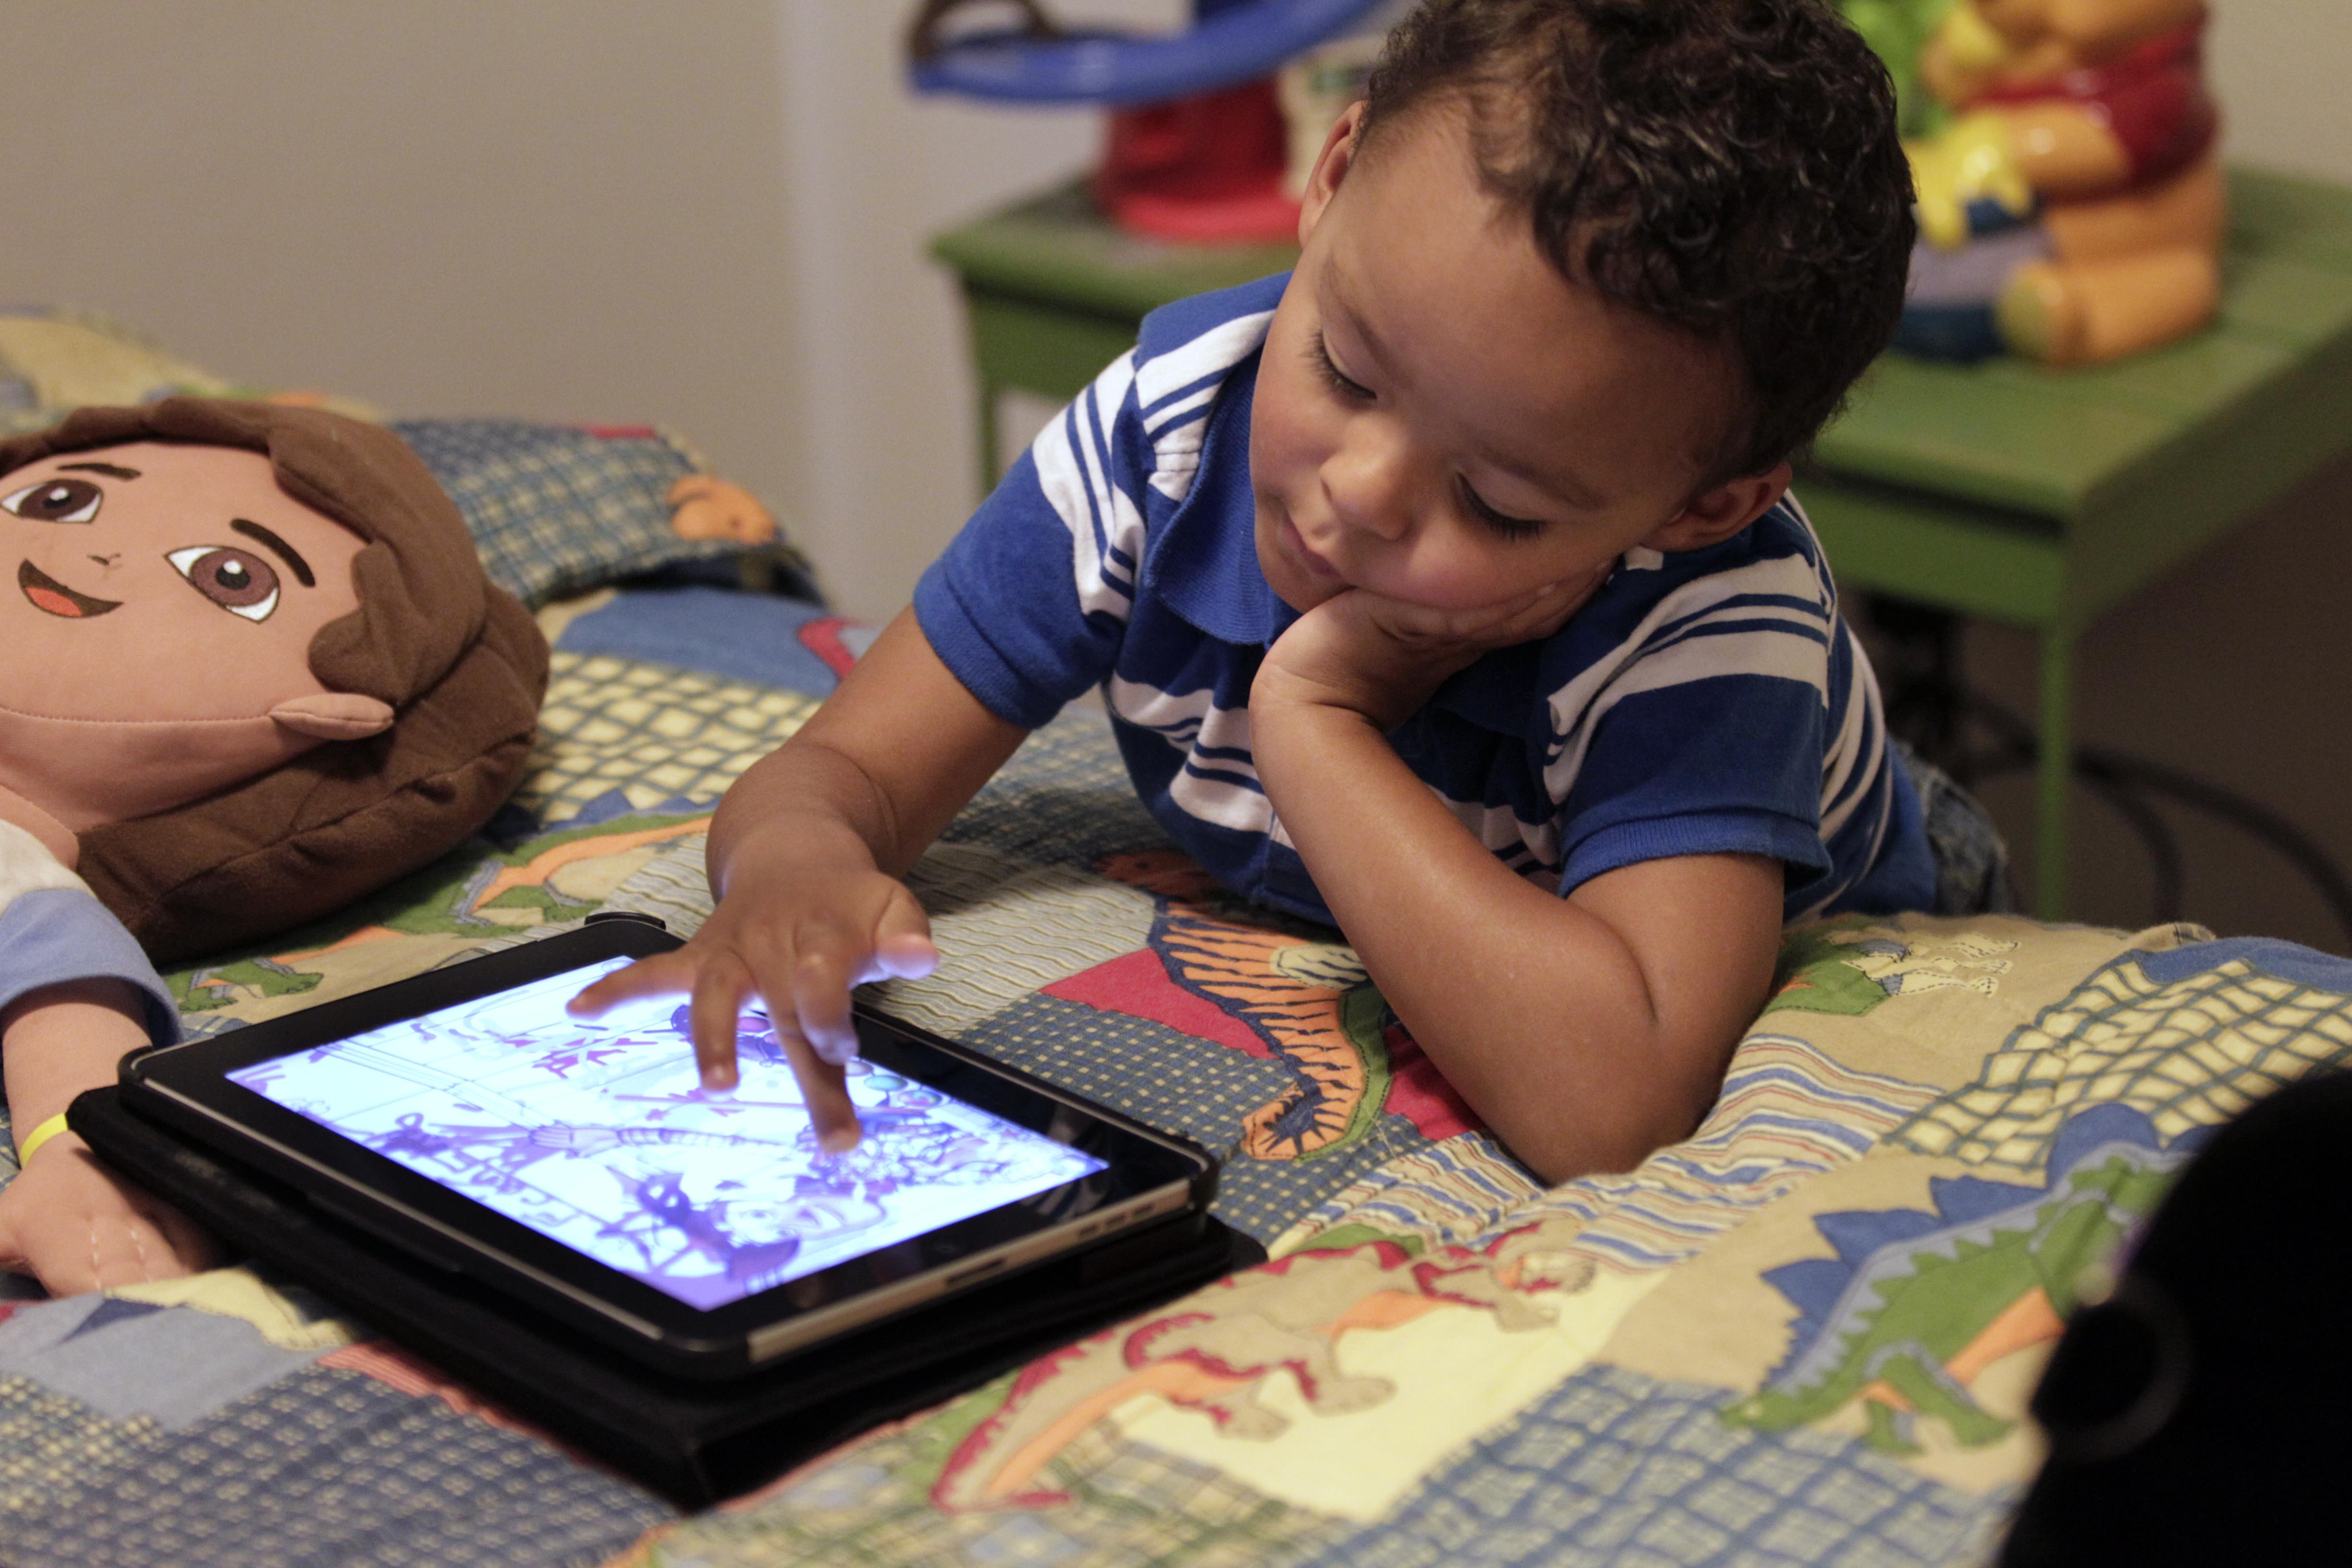 Research shows technology's influence on toddlers, teens